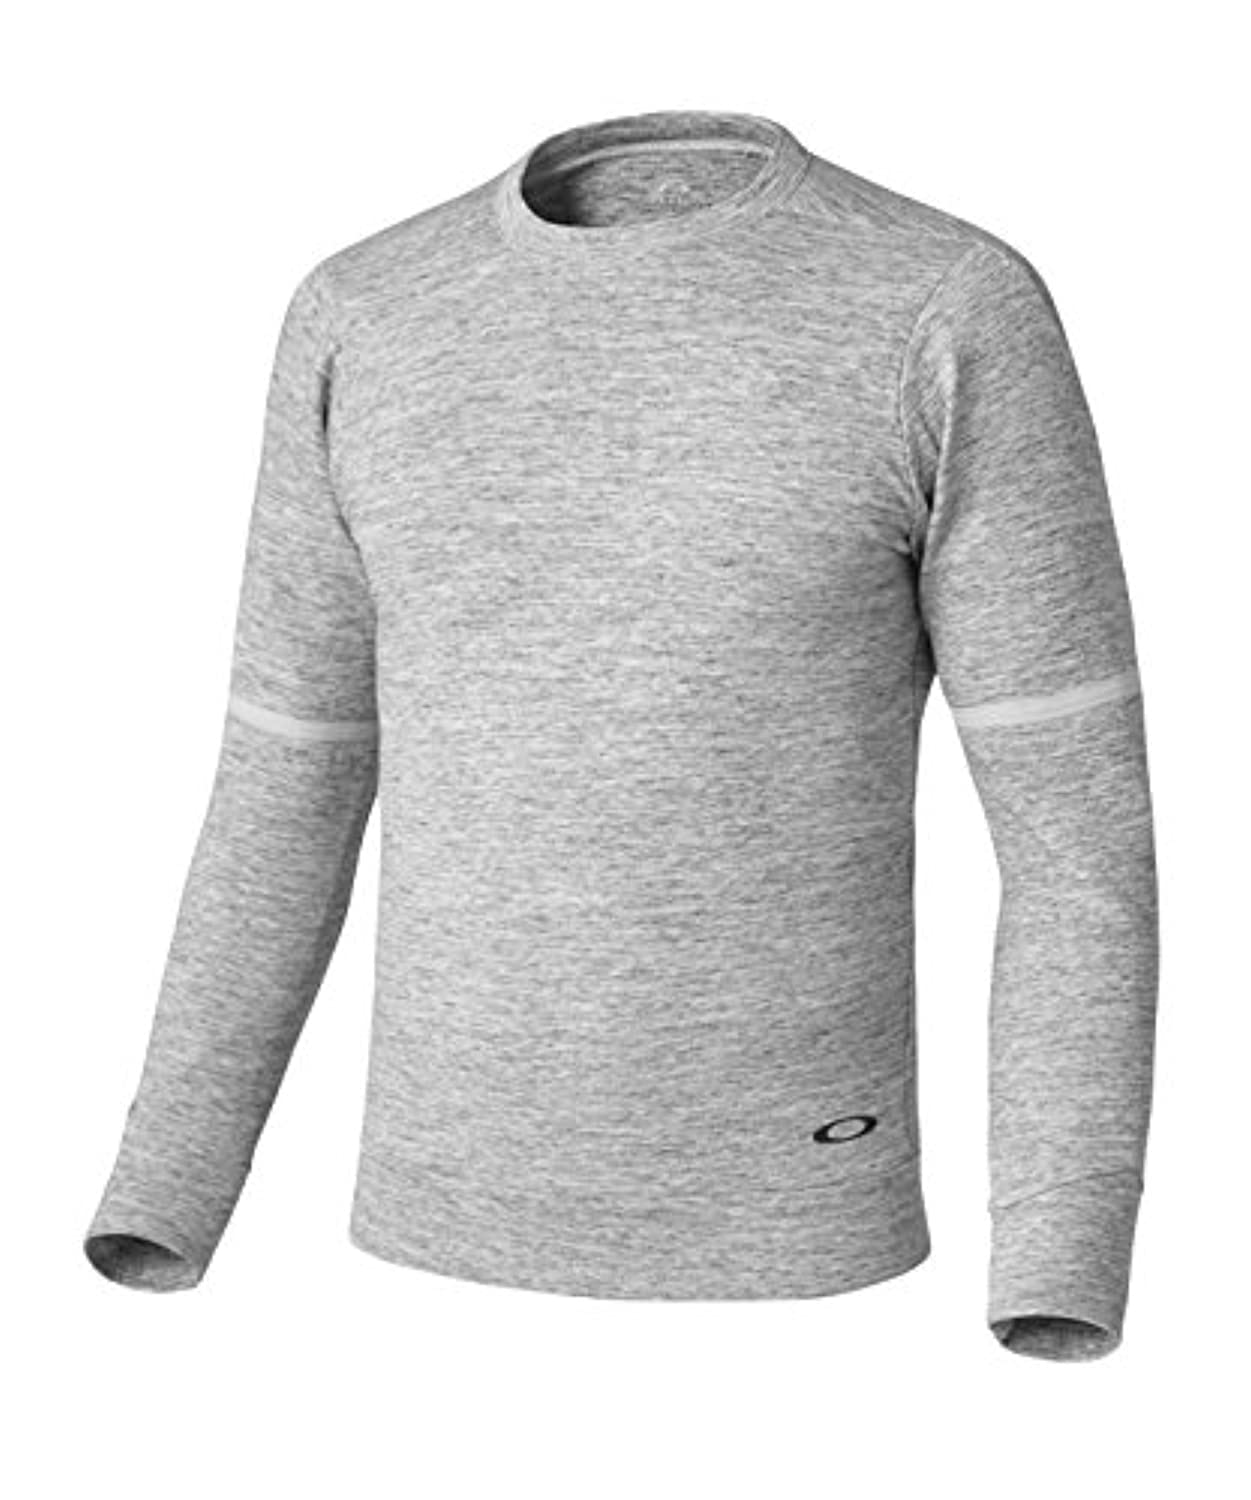 オークリー スウェット RS SHELL WR FLEECE CREW 2.0 461603JP 30G XL